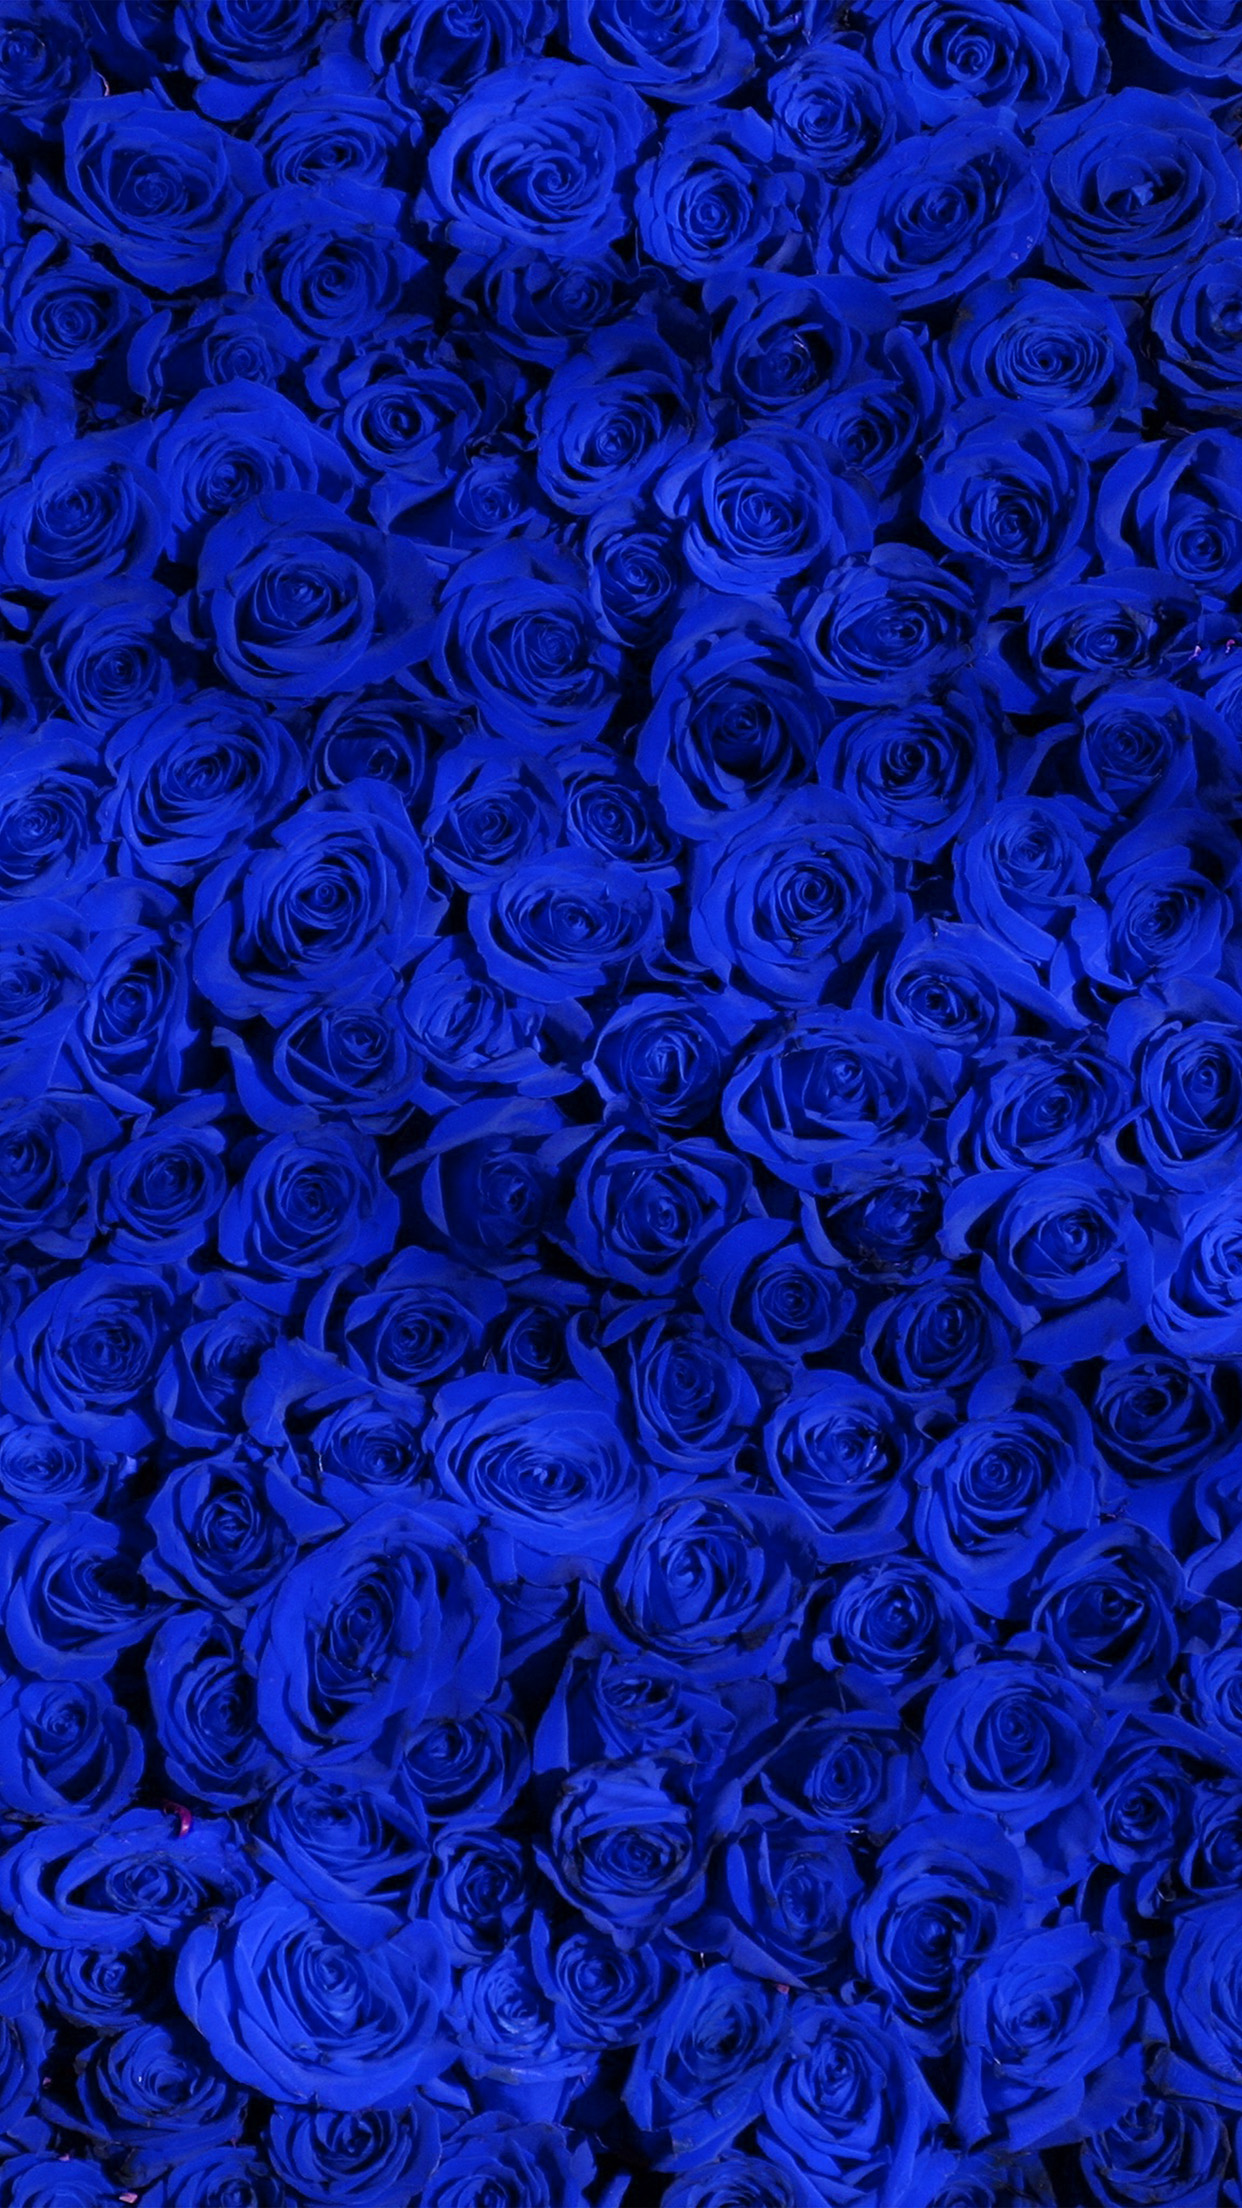 | vo44-rose-blue-pattern